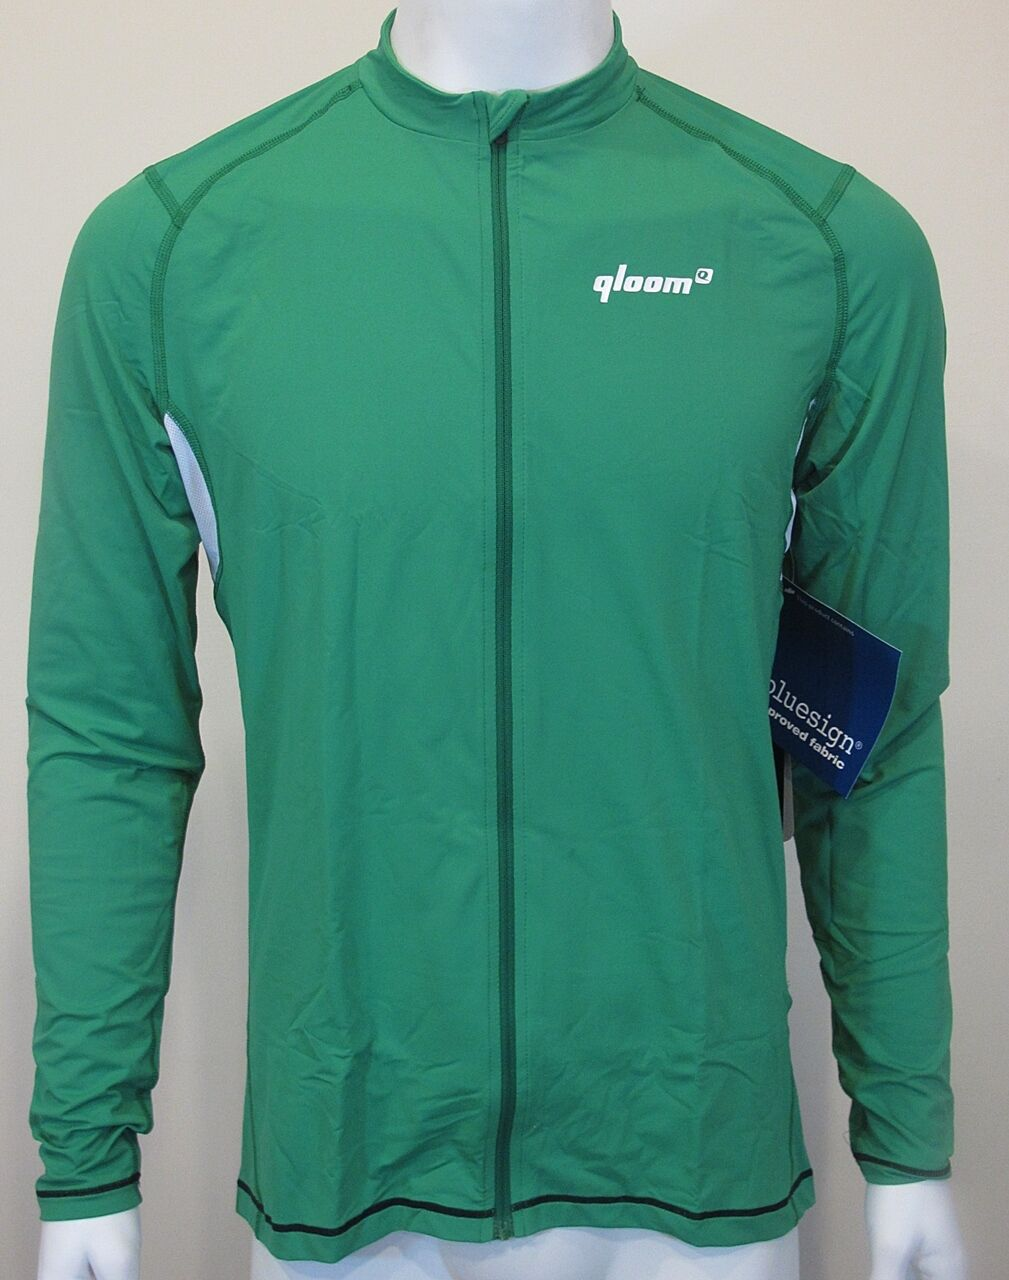 QLOOM BYRON Long Sleeves Training apparel Man Green Cycling Jerseys